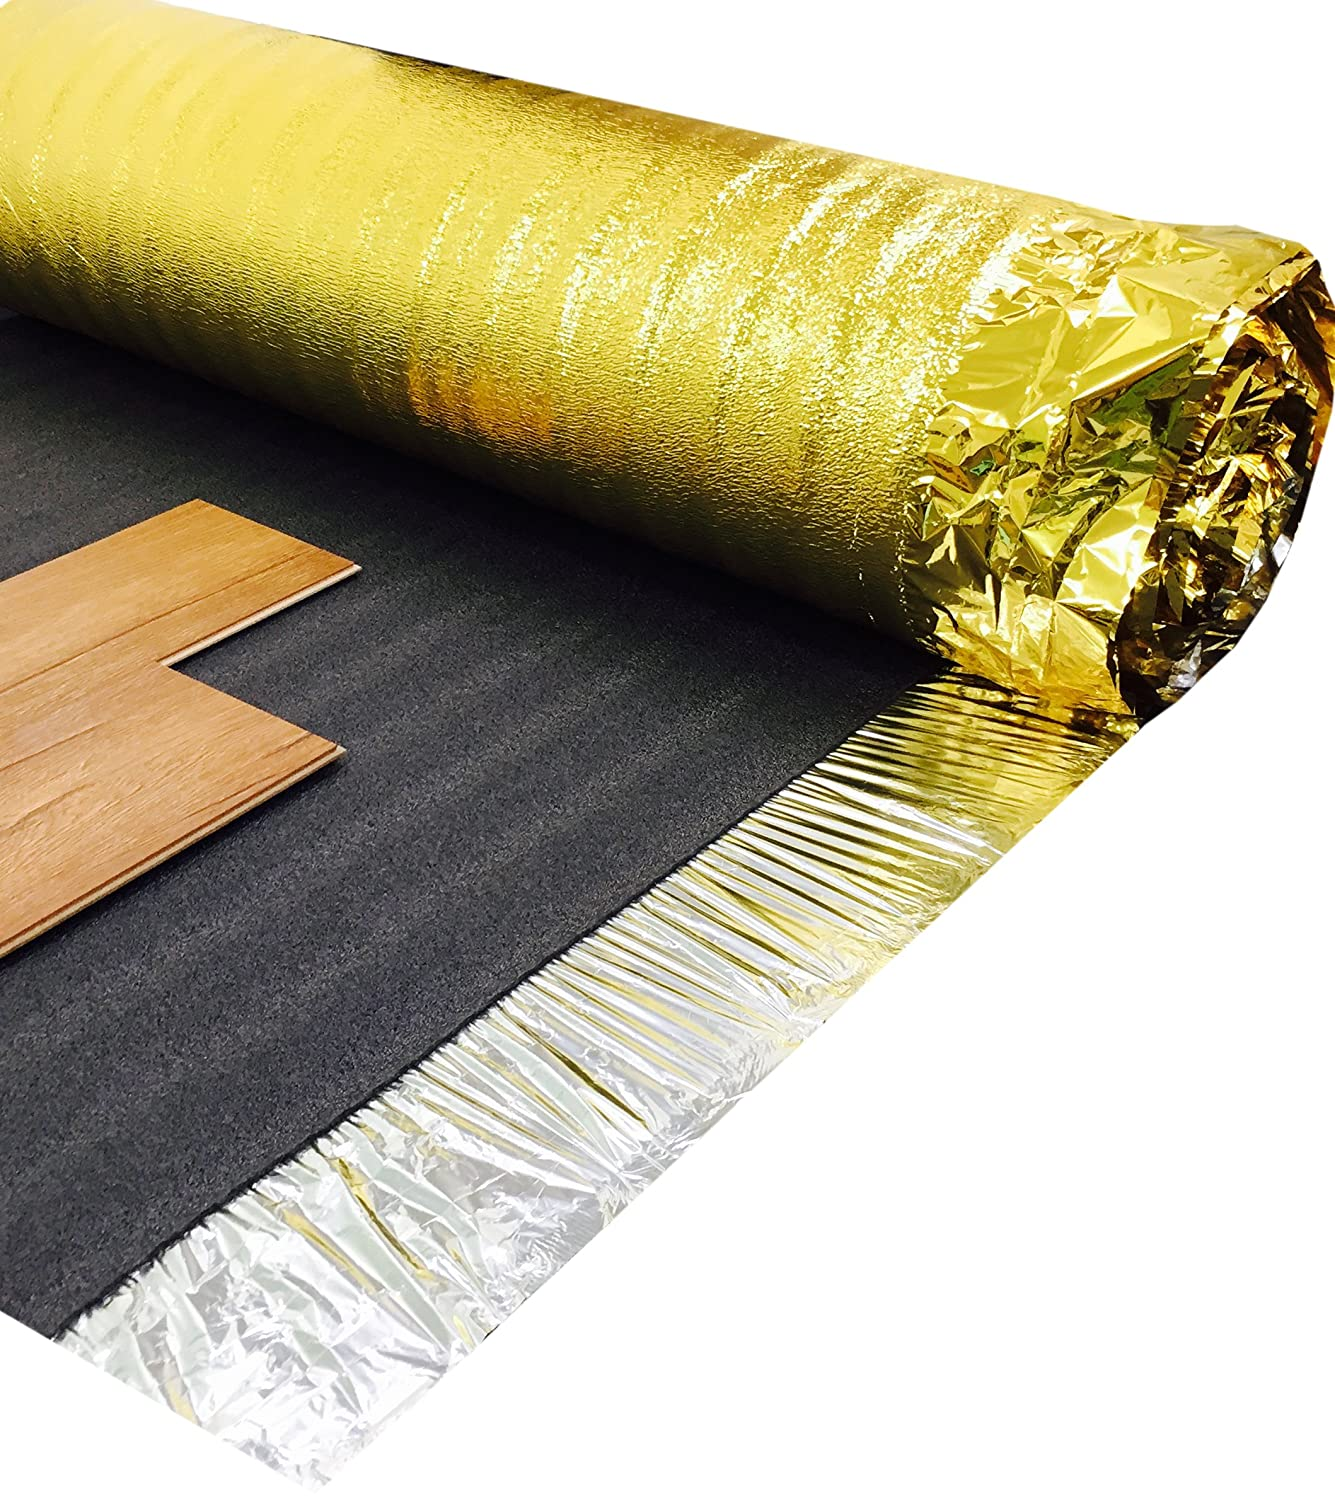 underlayment fast off flooring floors uk floor underlay delivery acoustic a foam white laminate